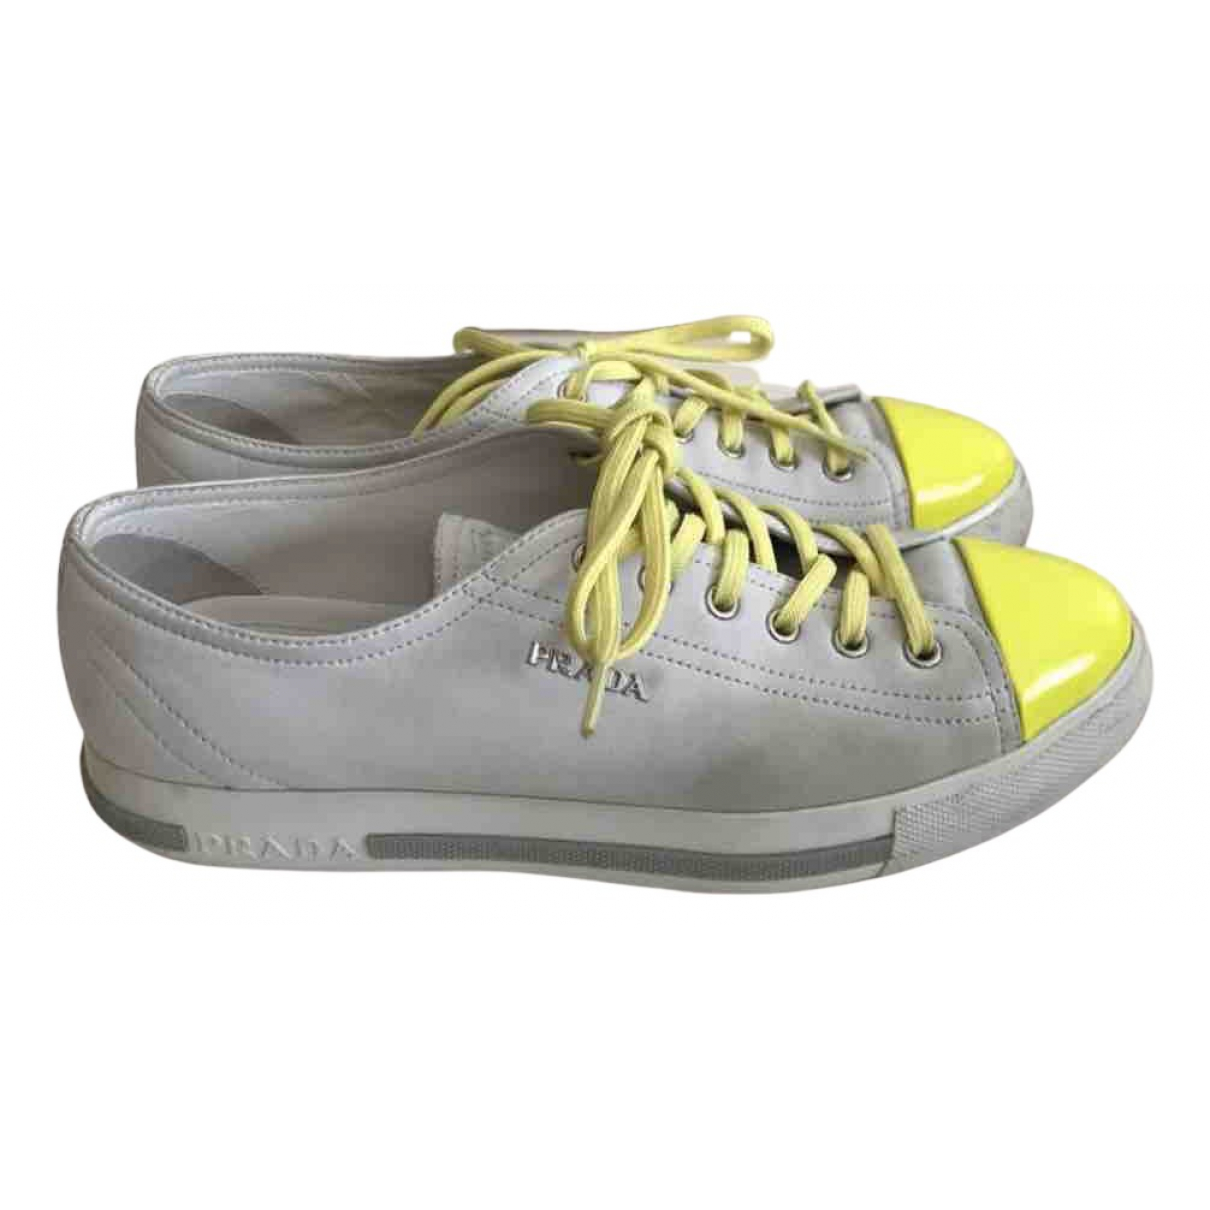 Prada \N Yellow Leather Trainers for Women 39 EU